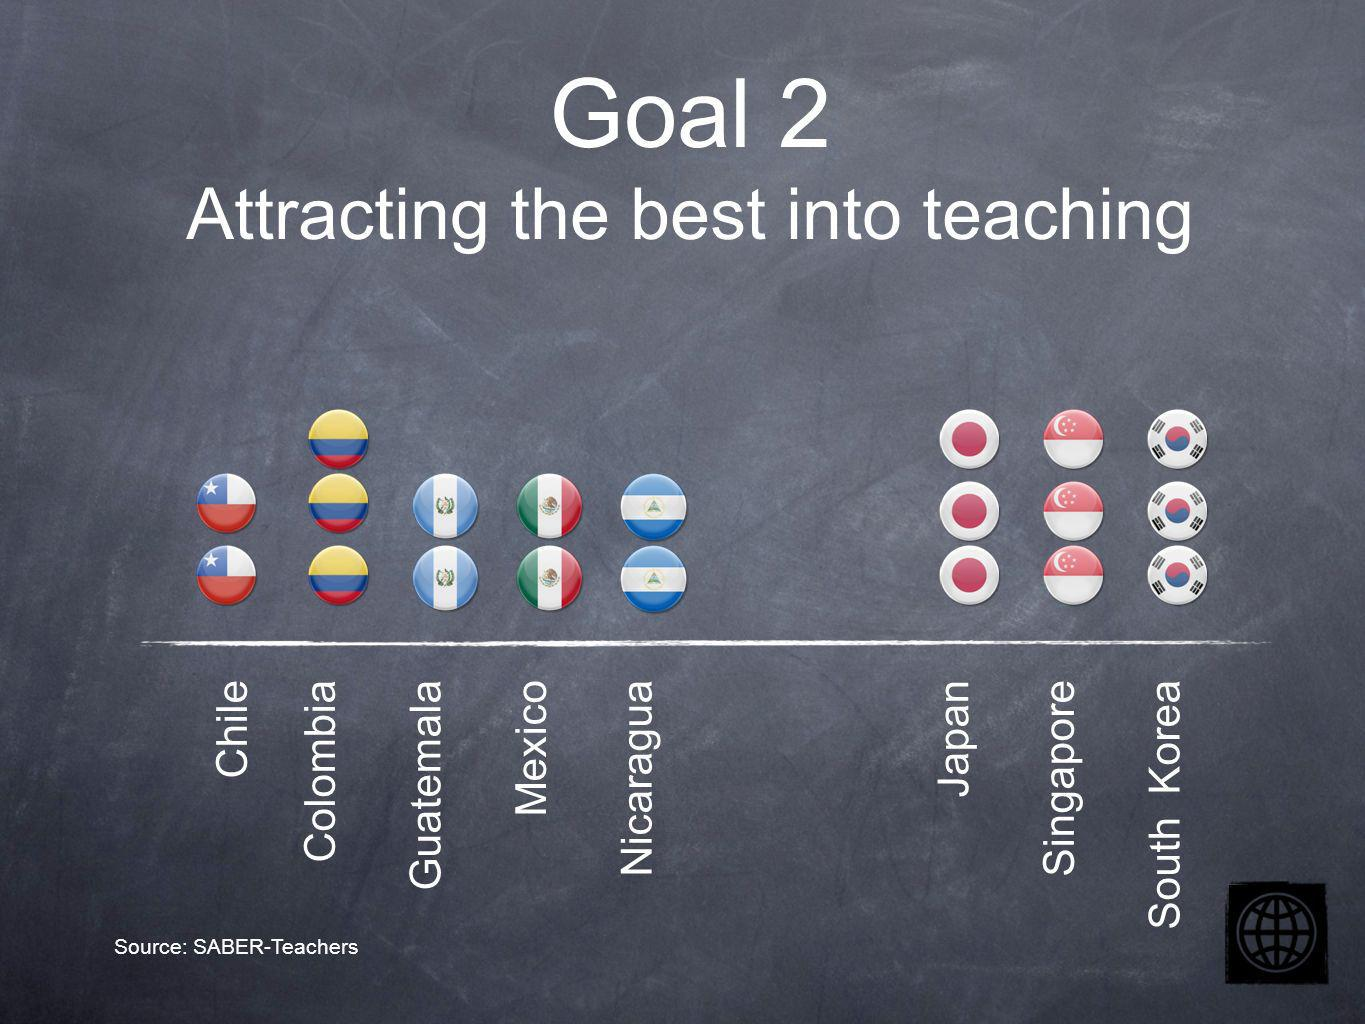 Chile Colombia Guatemala Mexico Nicaragua Japan Singapore South Korea Goal 2 Attracting the best into teaching Source: SABER-Teachers